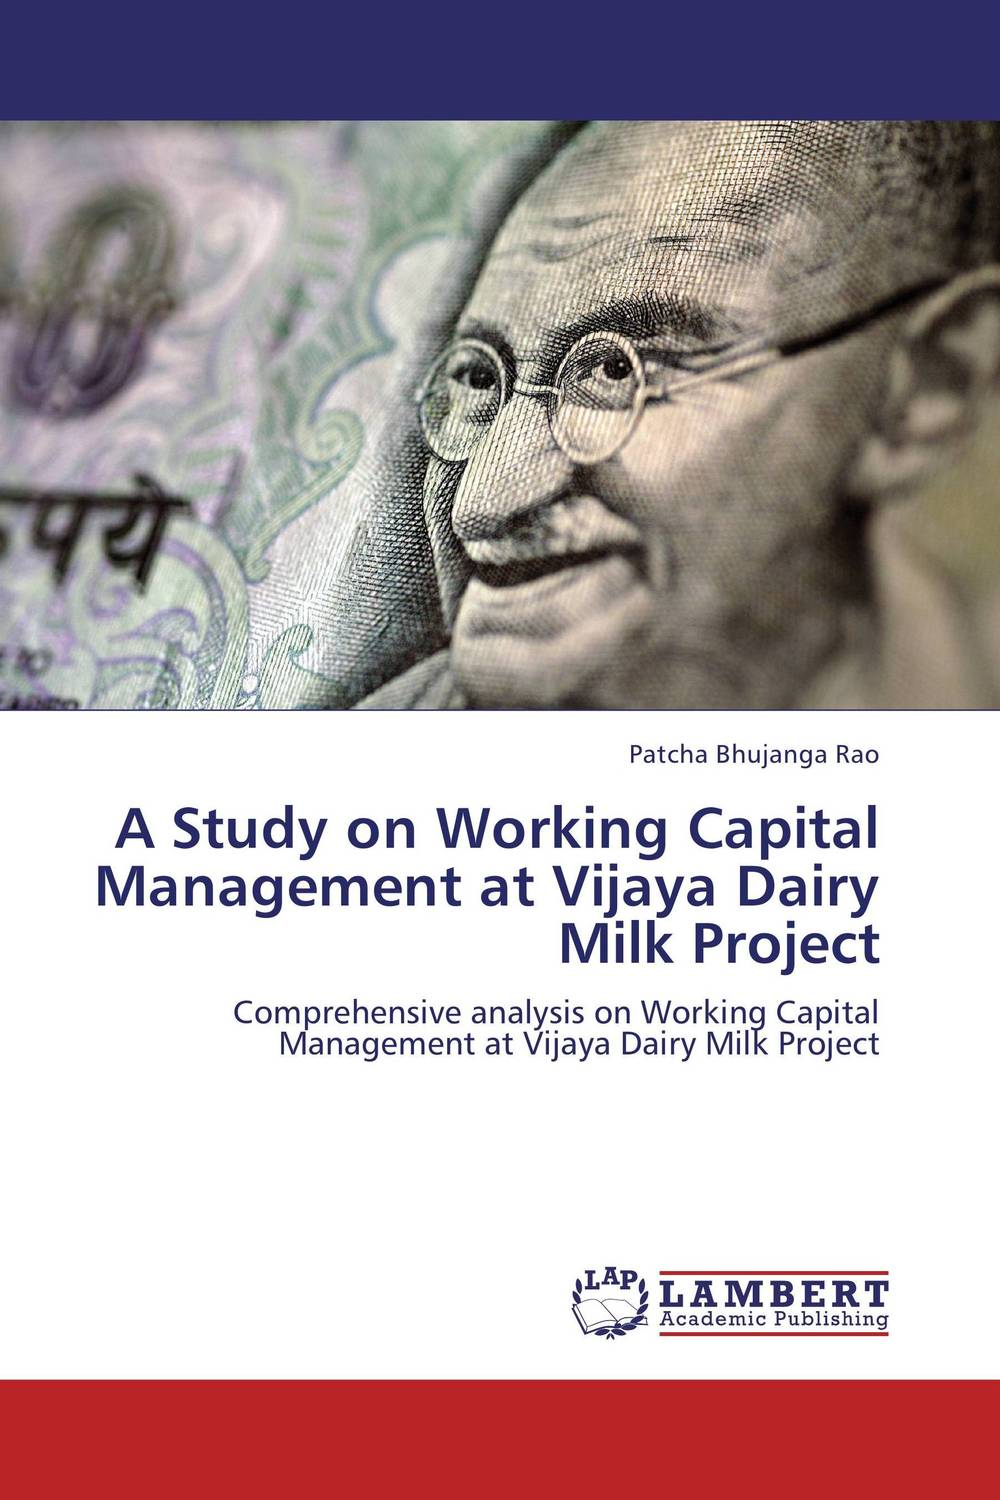 A Study on Working Capital Management at Vijaya Dairy Milk Project james sagner working capital management applications and case studies